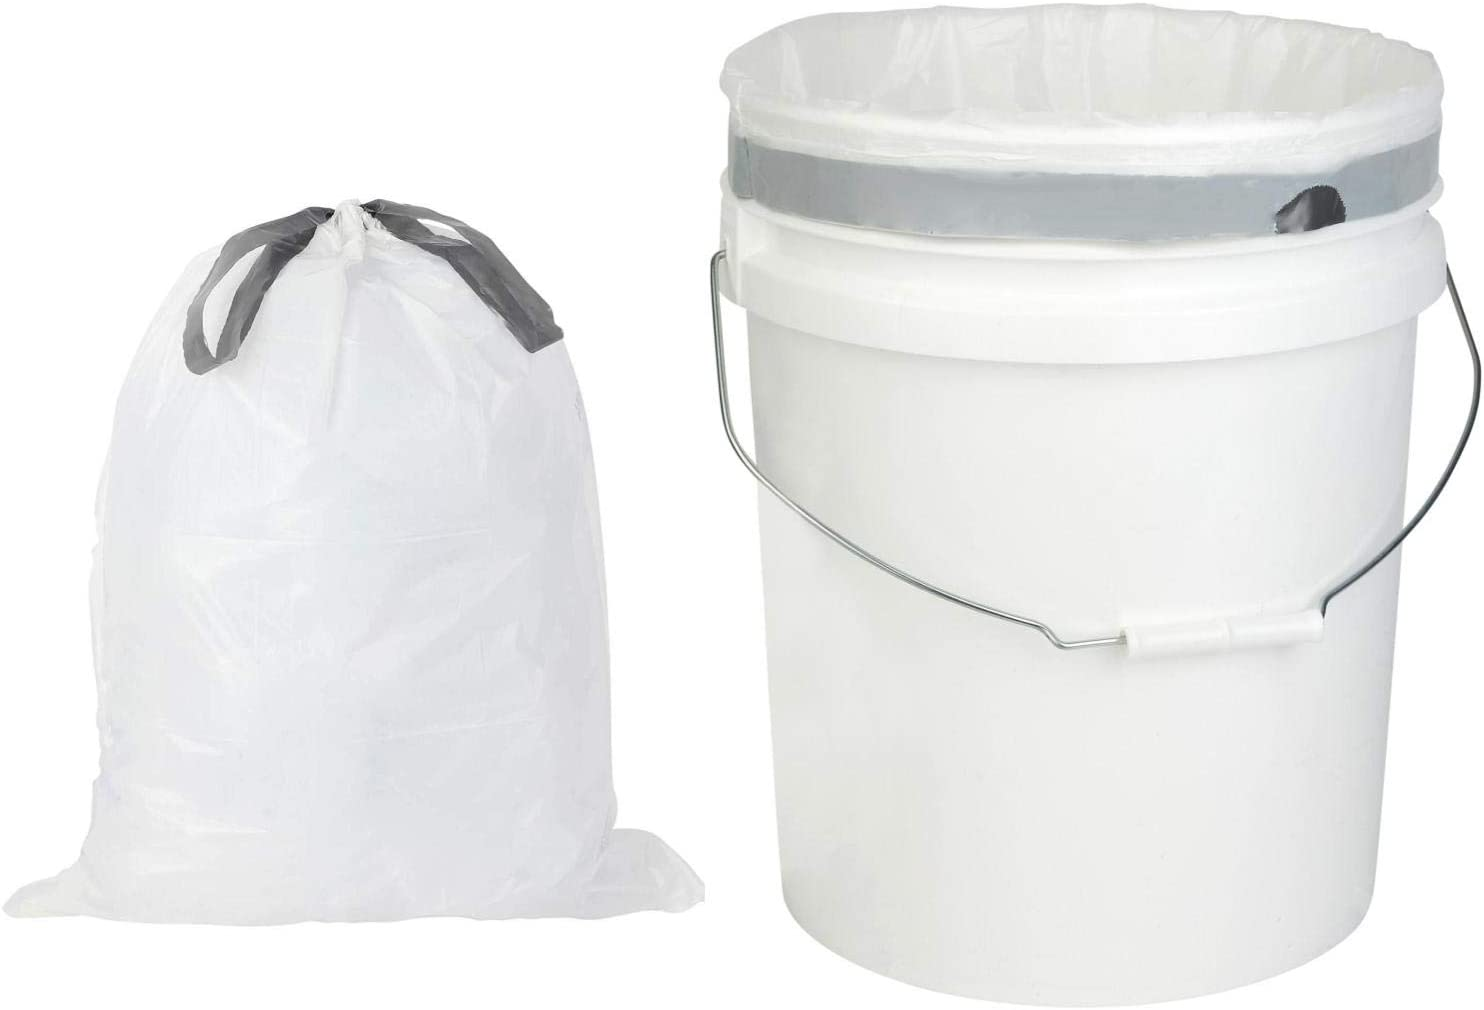 Plasticplace 5 Gallon Trash Bags │ 0.9 Mil │ White Drawstring Garbage Liners for Bucket │ 19